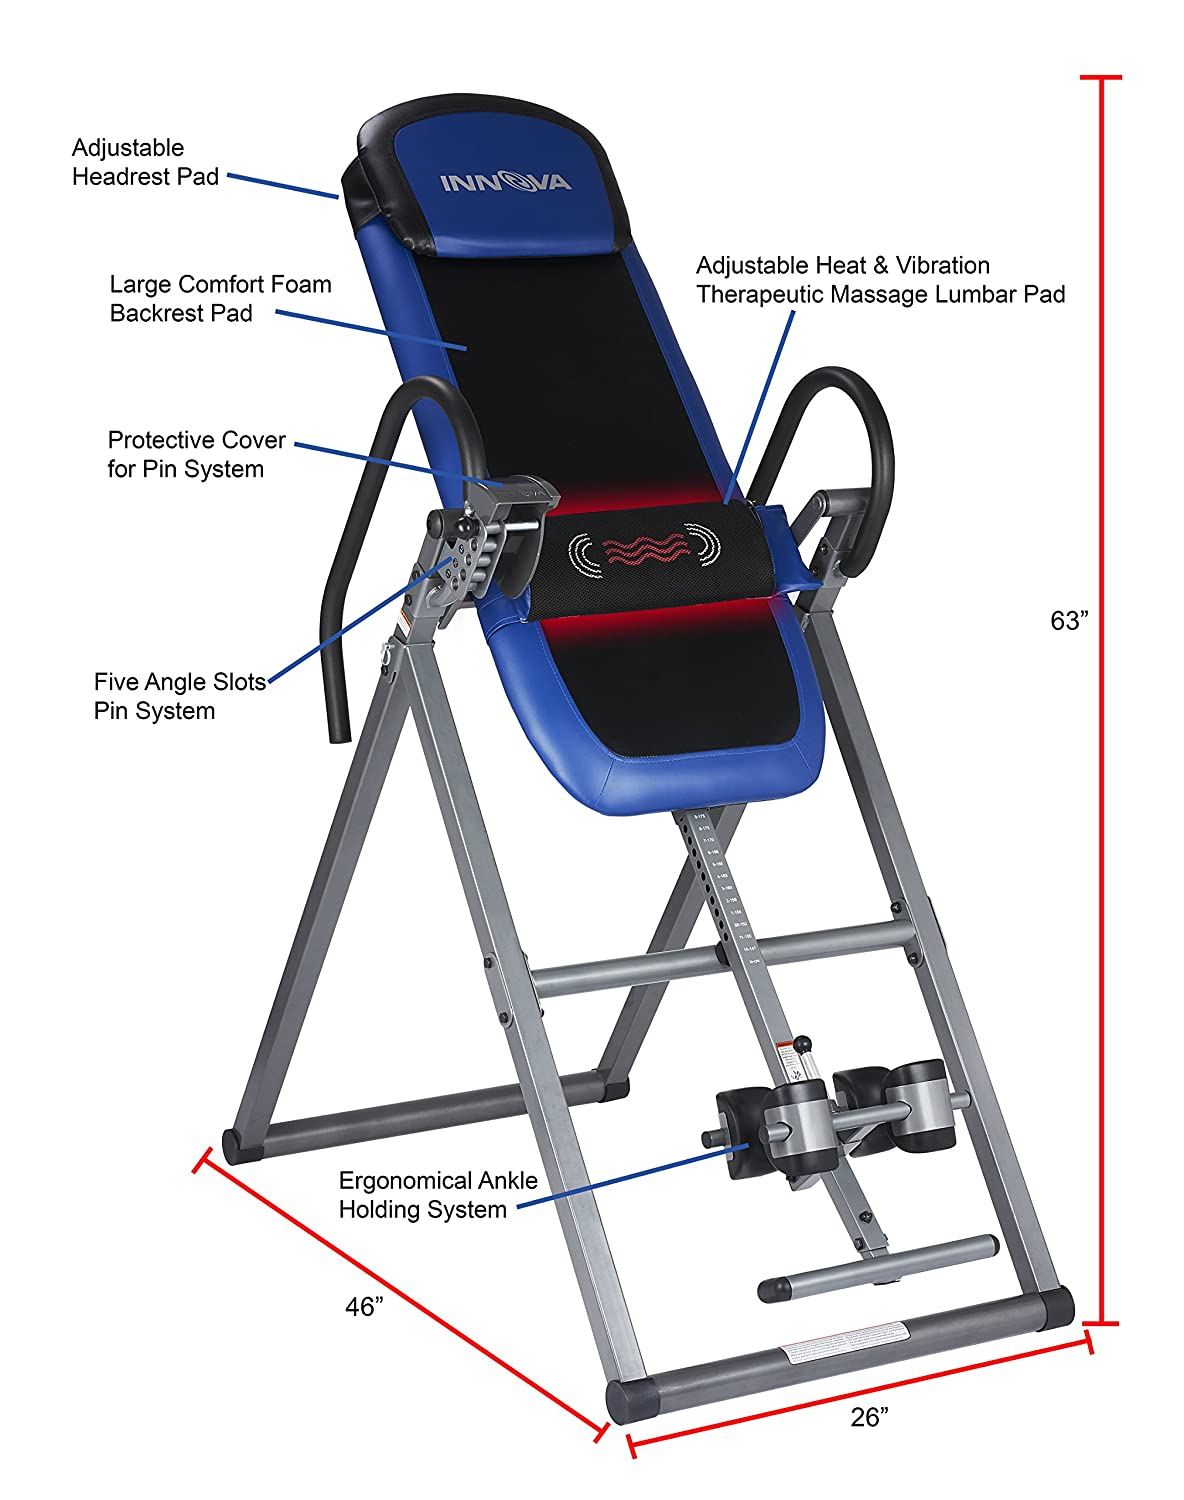 Heavy Duty Inversion Tables With High Weight Capacities | For Big ...